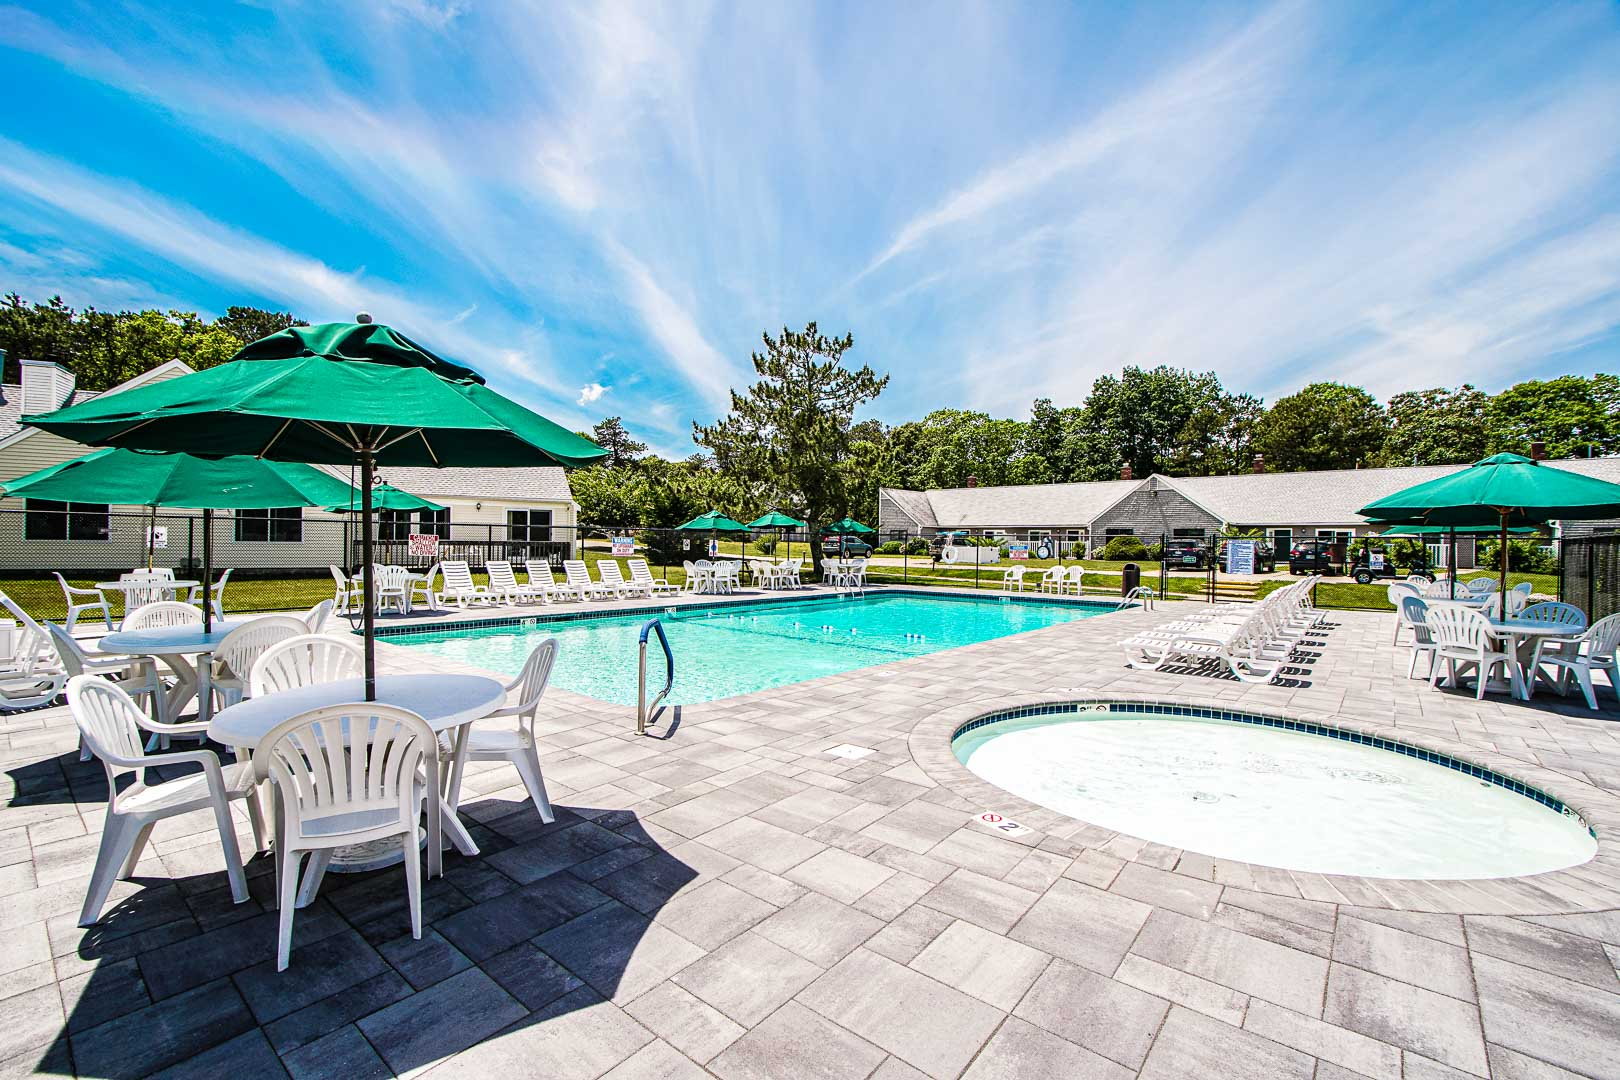 An expansive view of the outdoor swimming pool and Jacuzzi at VRI's Brewster Green Resort in Massachusetts.